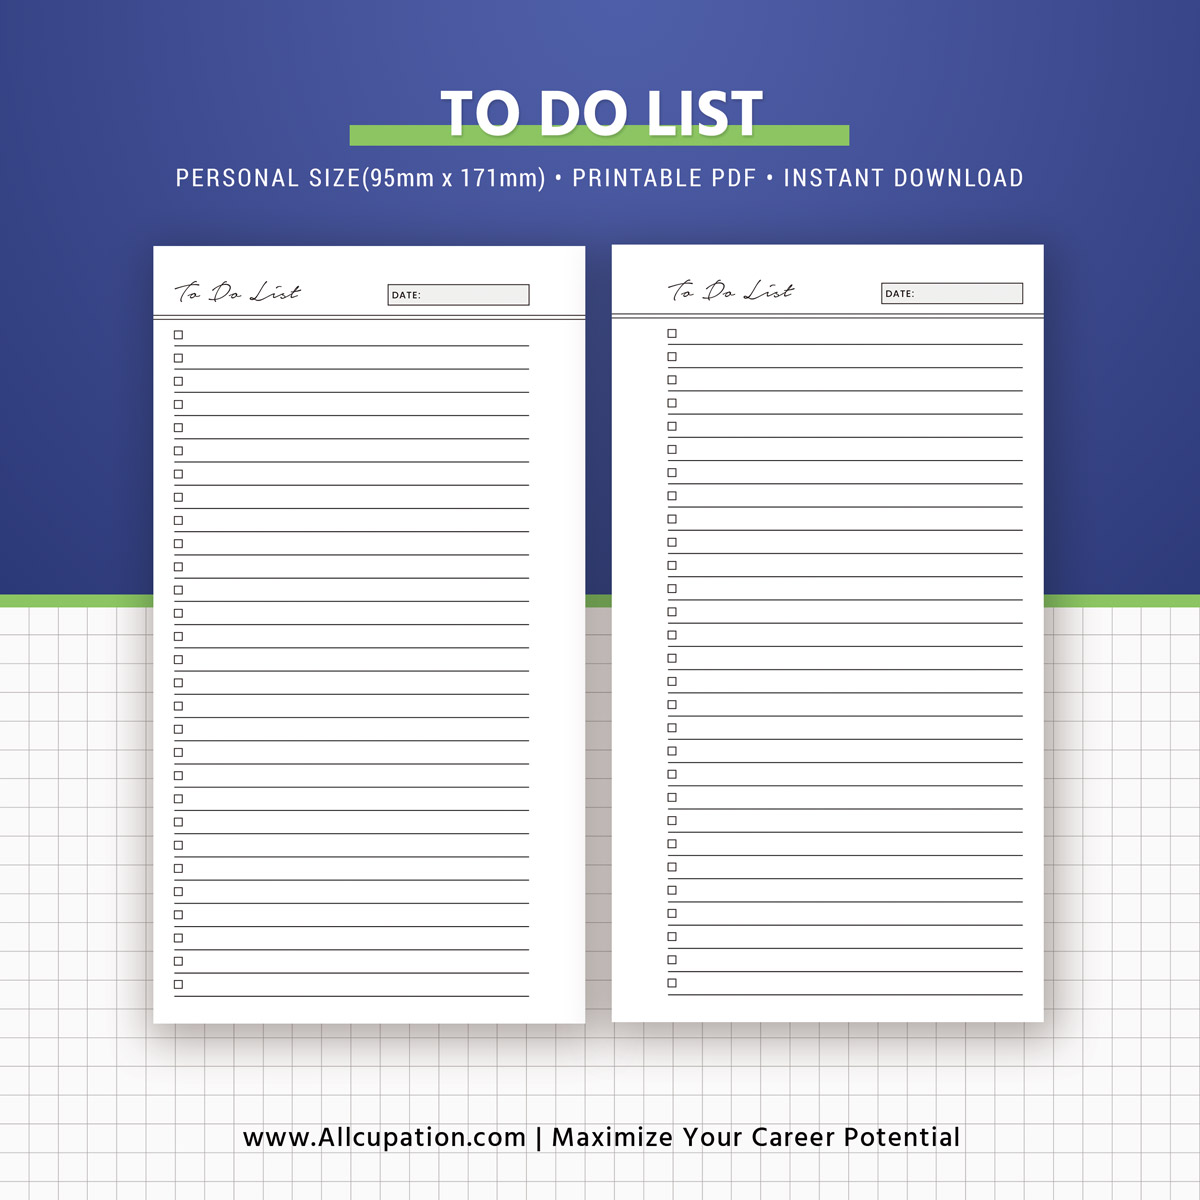 To Do List Printable  To Do List Inserts  Personal Size